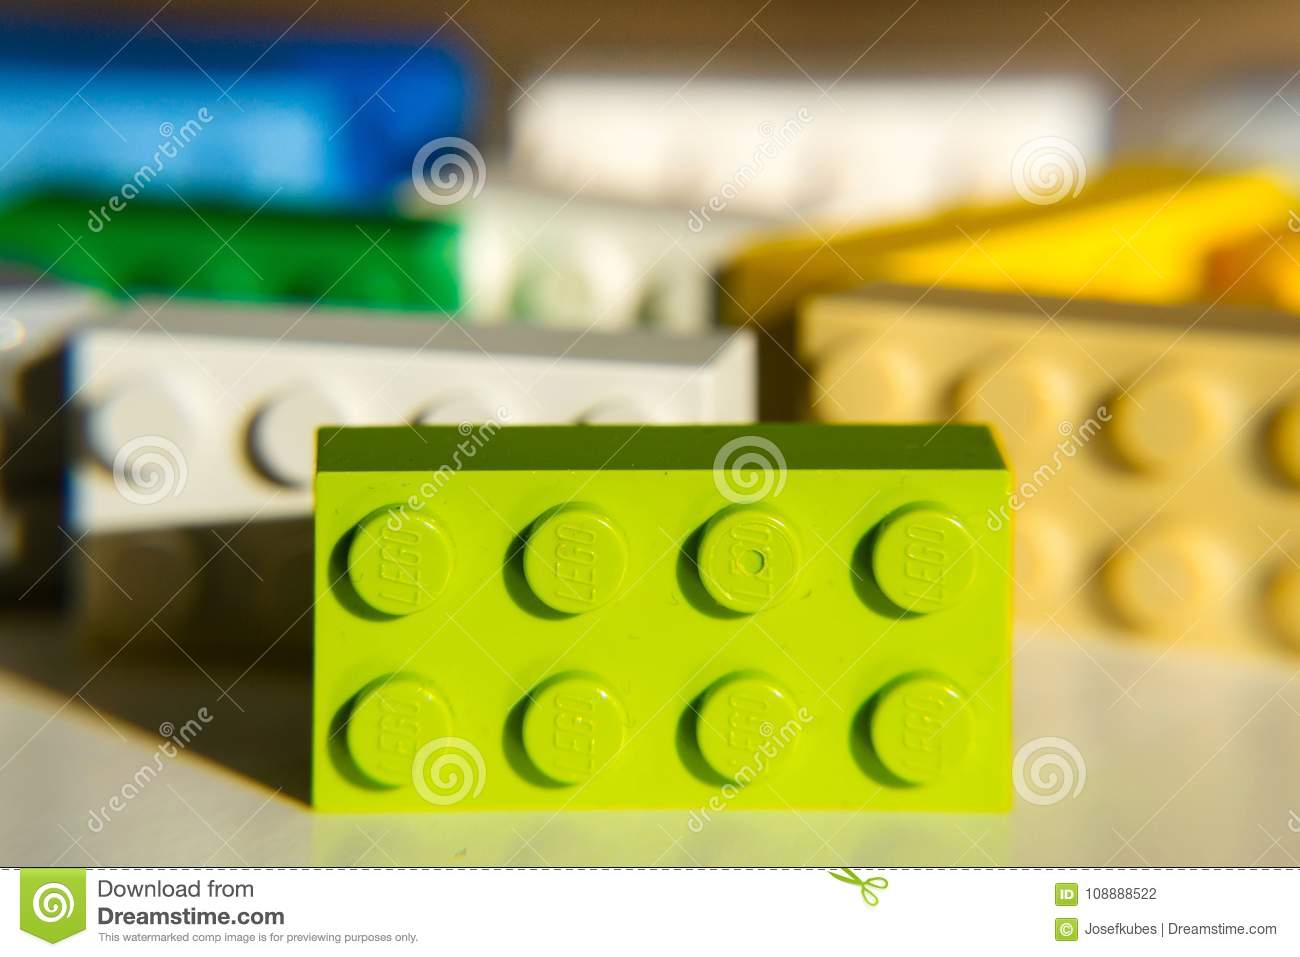 Colorful Lego Bricks By The Lego Group Isolated On White Background     Download Colorful Lego Bricks By The Lego Group Isolated On White  Background Editorial Photography   Image